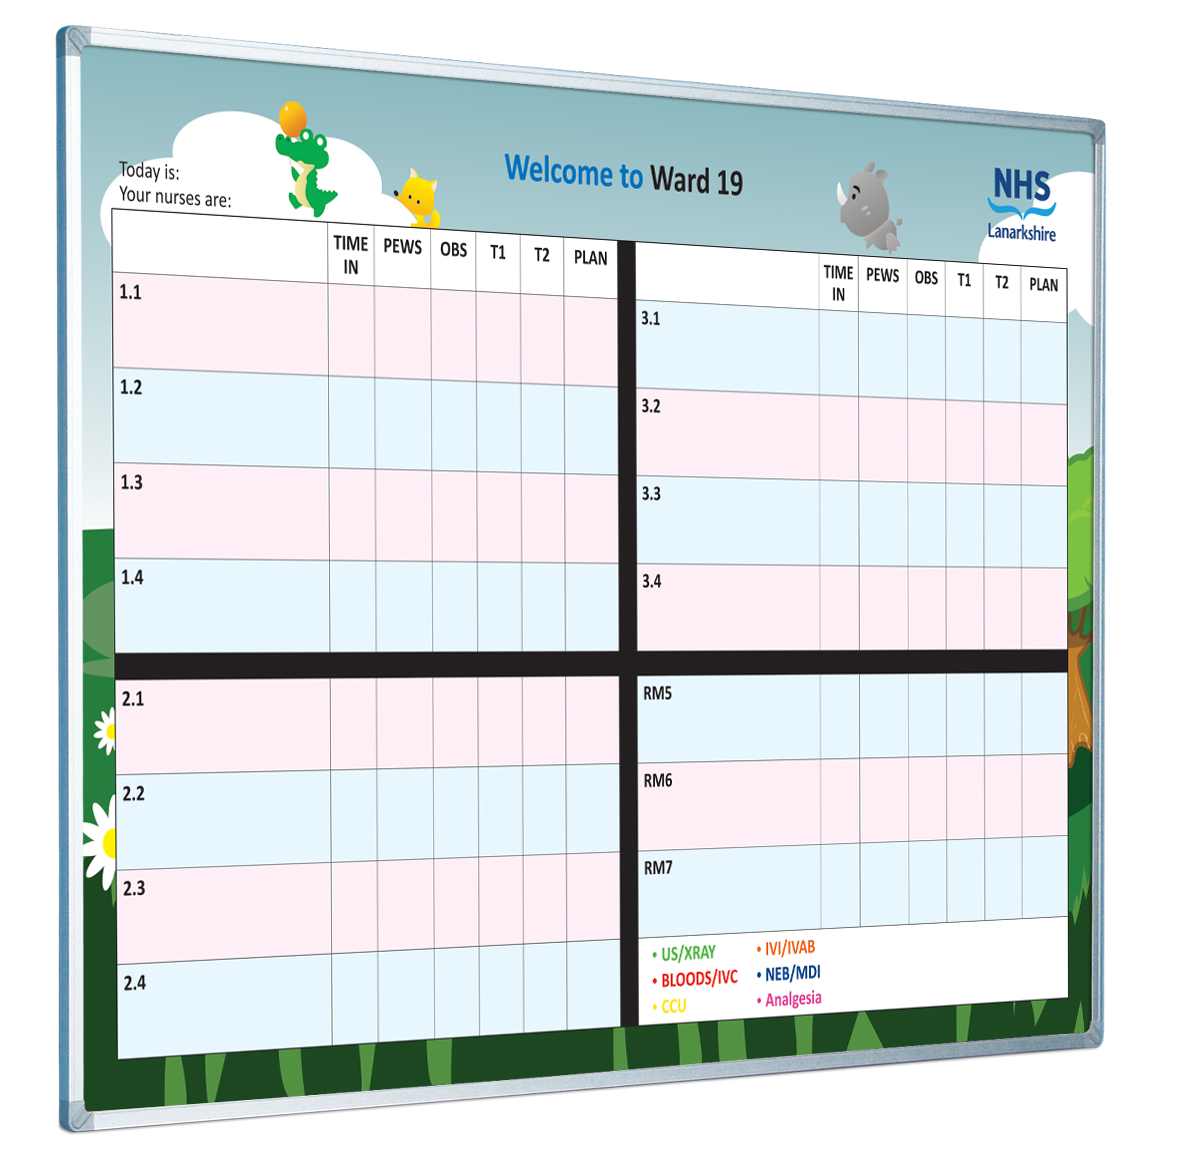 This is a custom printed ward whiteboard design. The